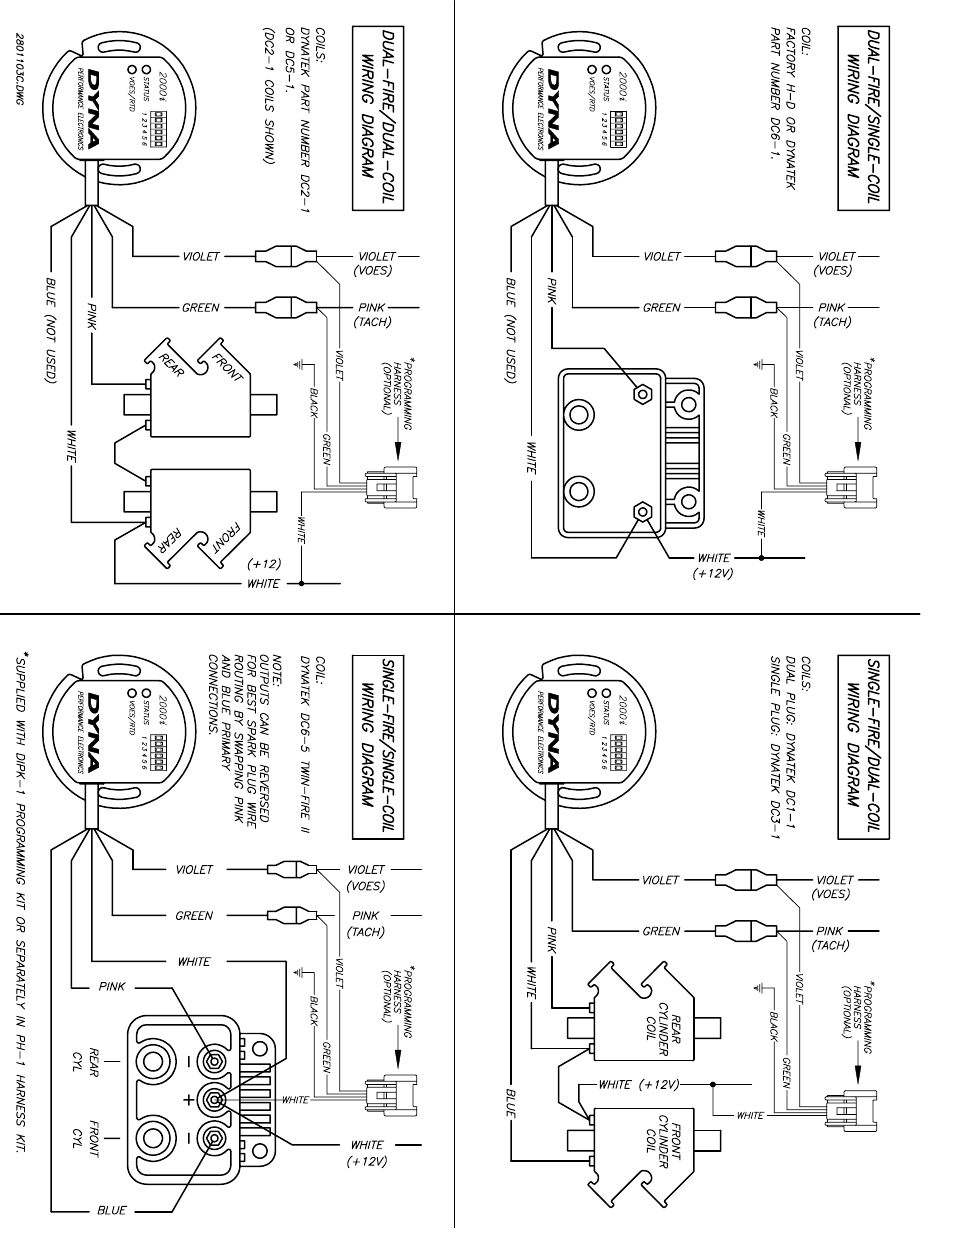 harley dyna s wiring diagram dynatek dyna 2000i programmable user manual | page 5 / 6 #7